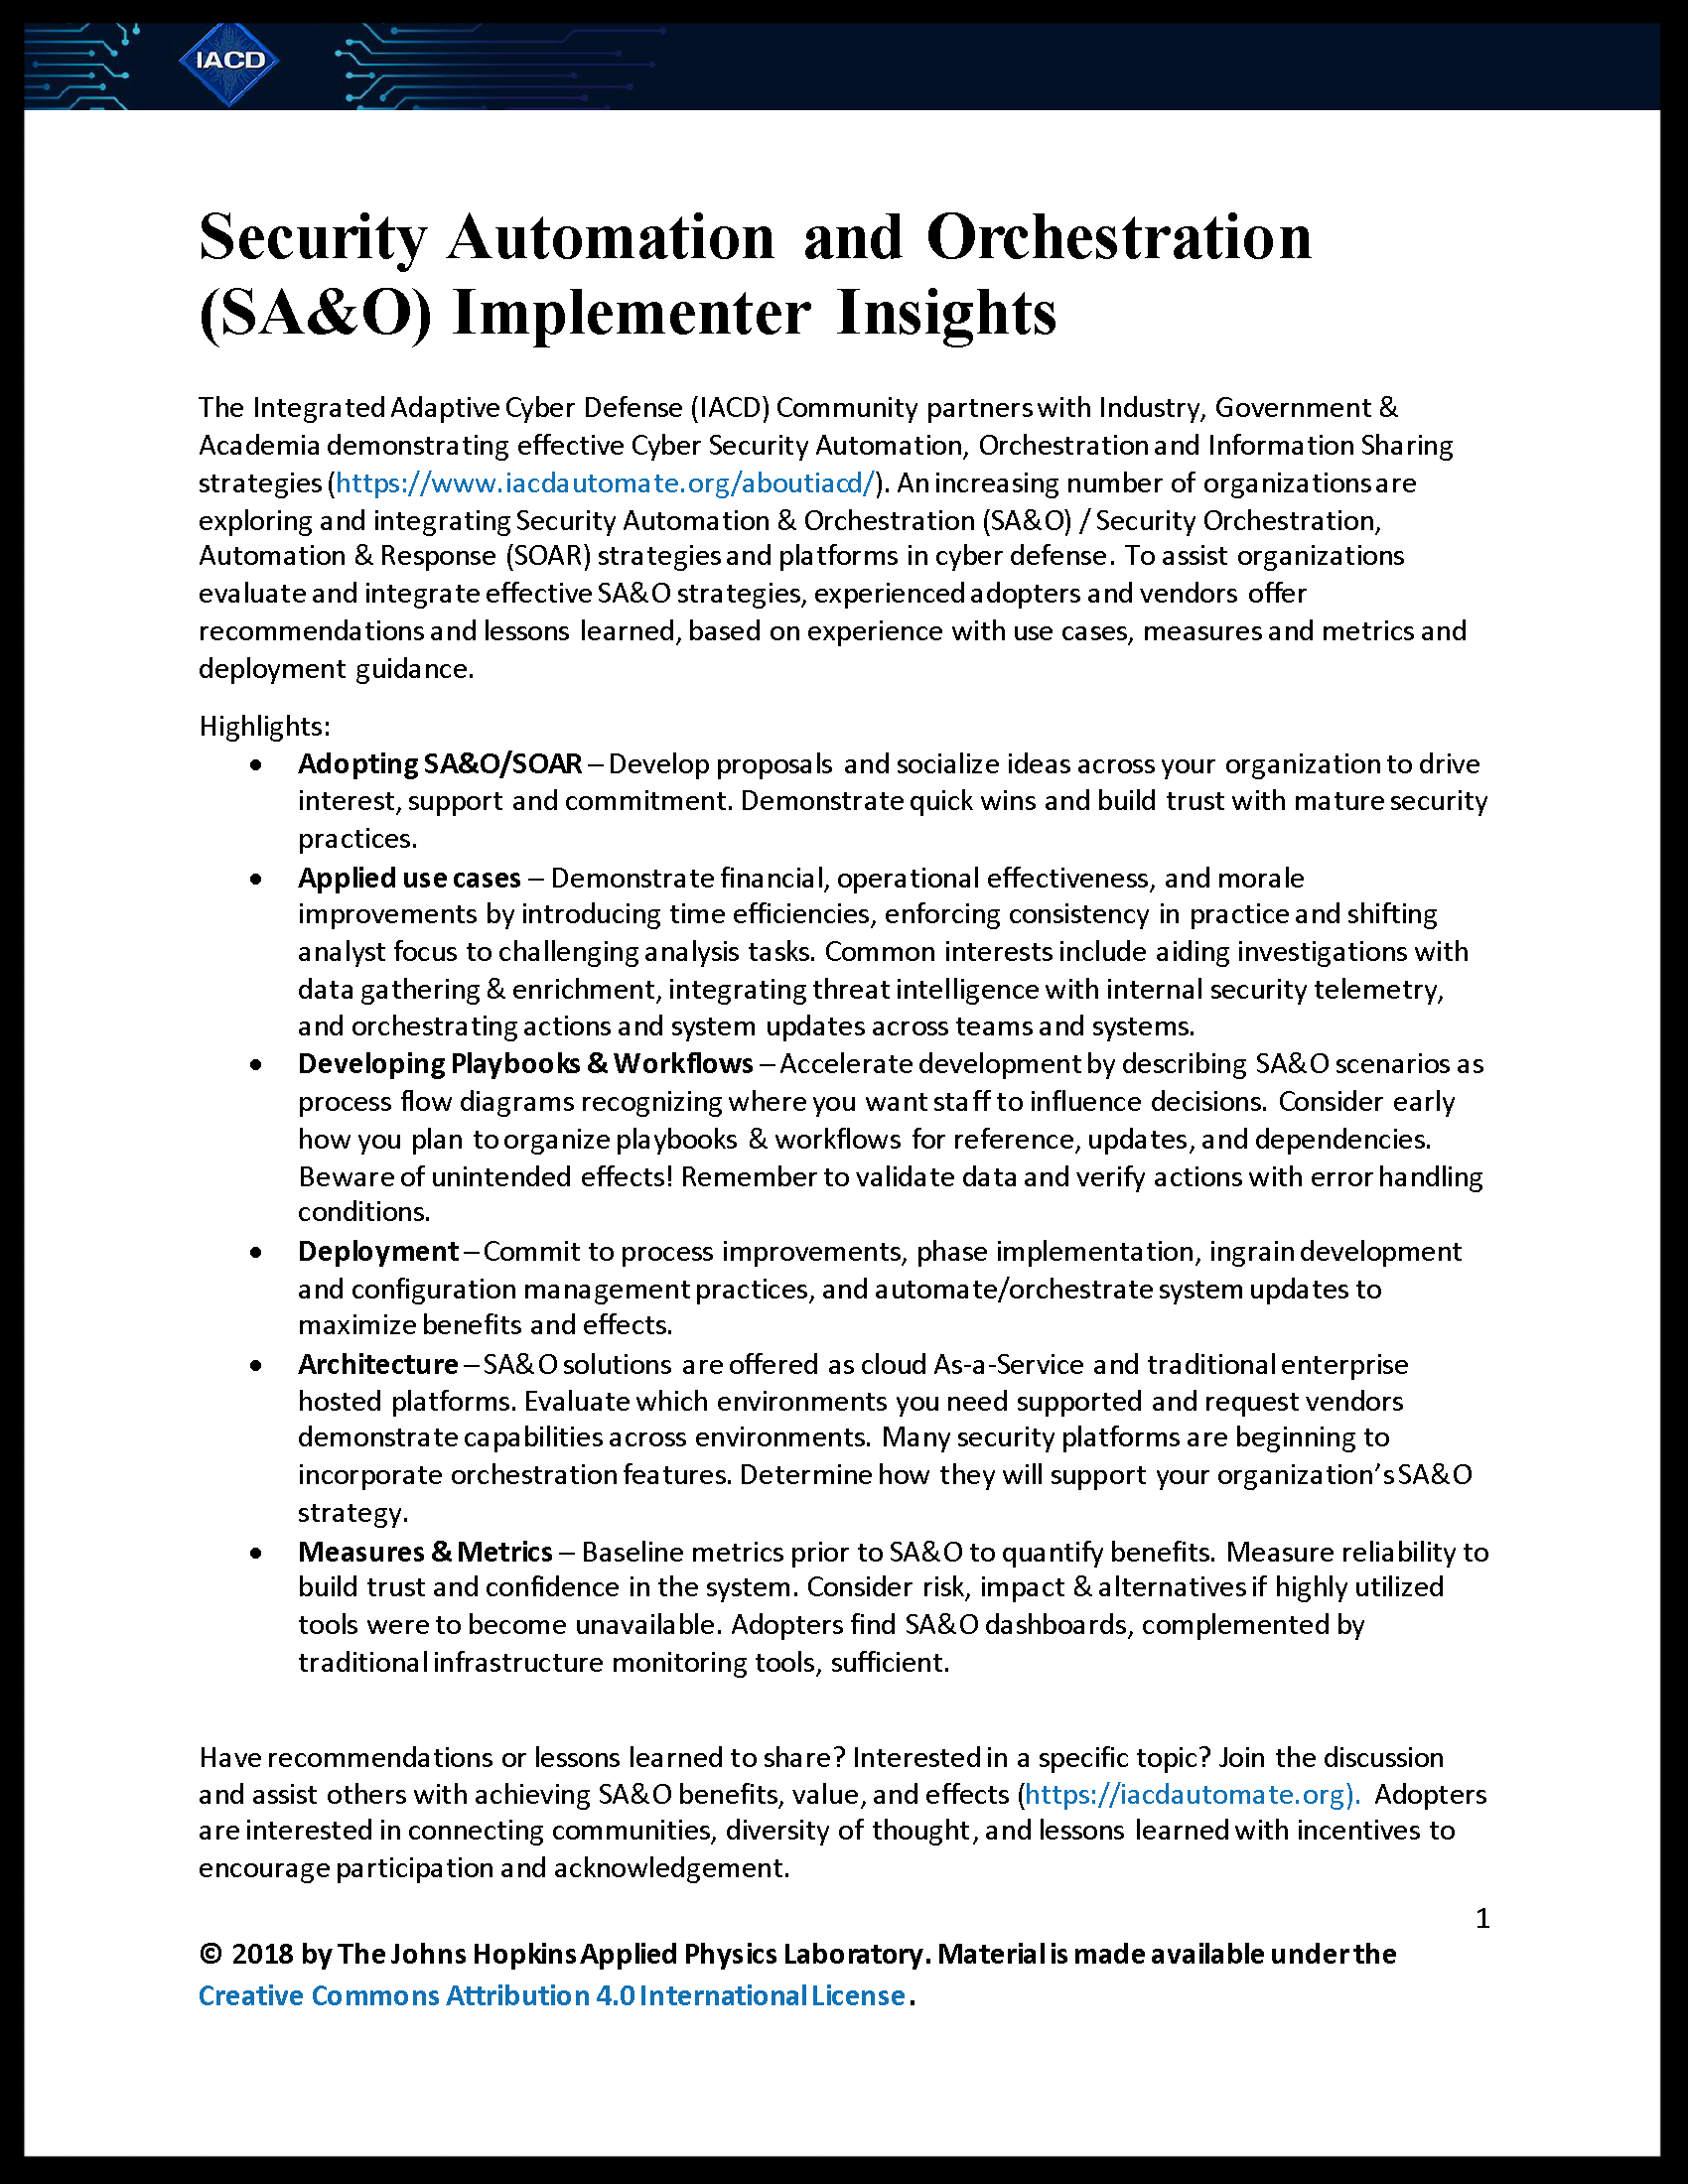 Security Automation and Orchestration (SA&O) Implementer Insights